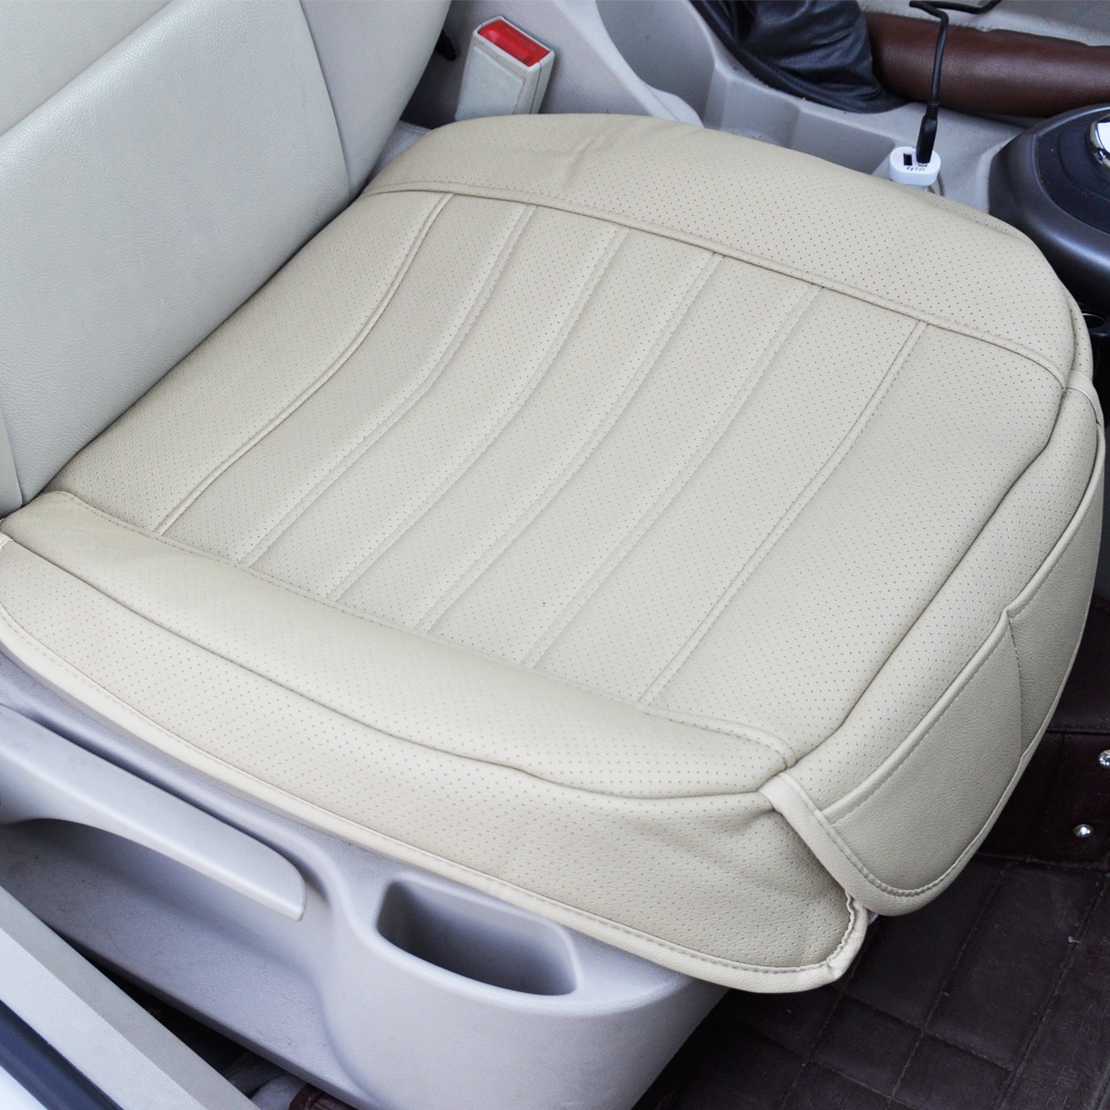 Universal Beige Car Front Seat Cover Breathable PU Leather Pad Cushion 702706039161